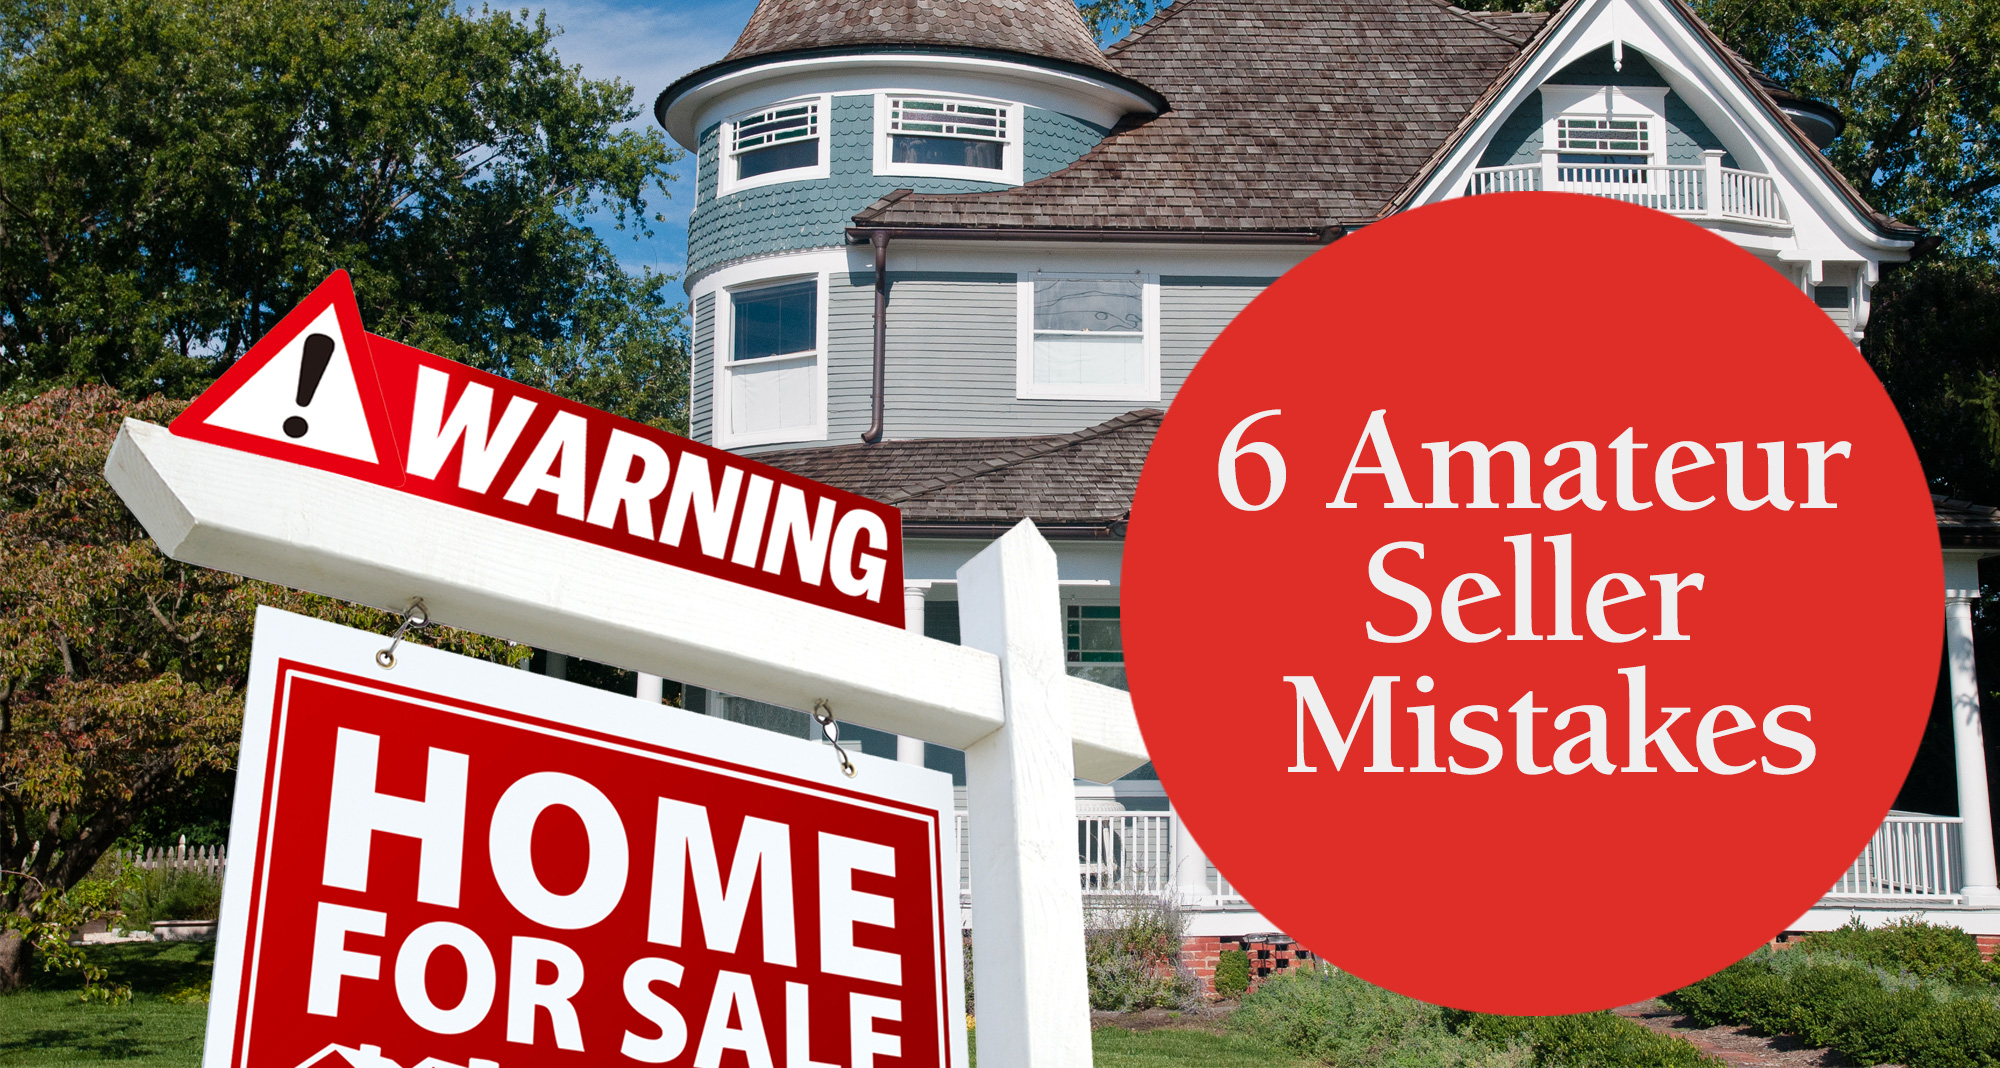 6 Amateur Charlotte Home Seller Mistakes